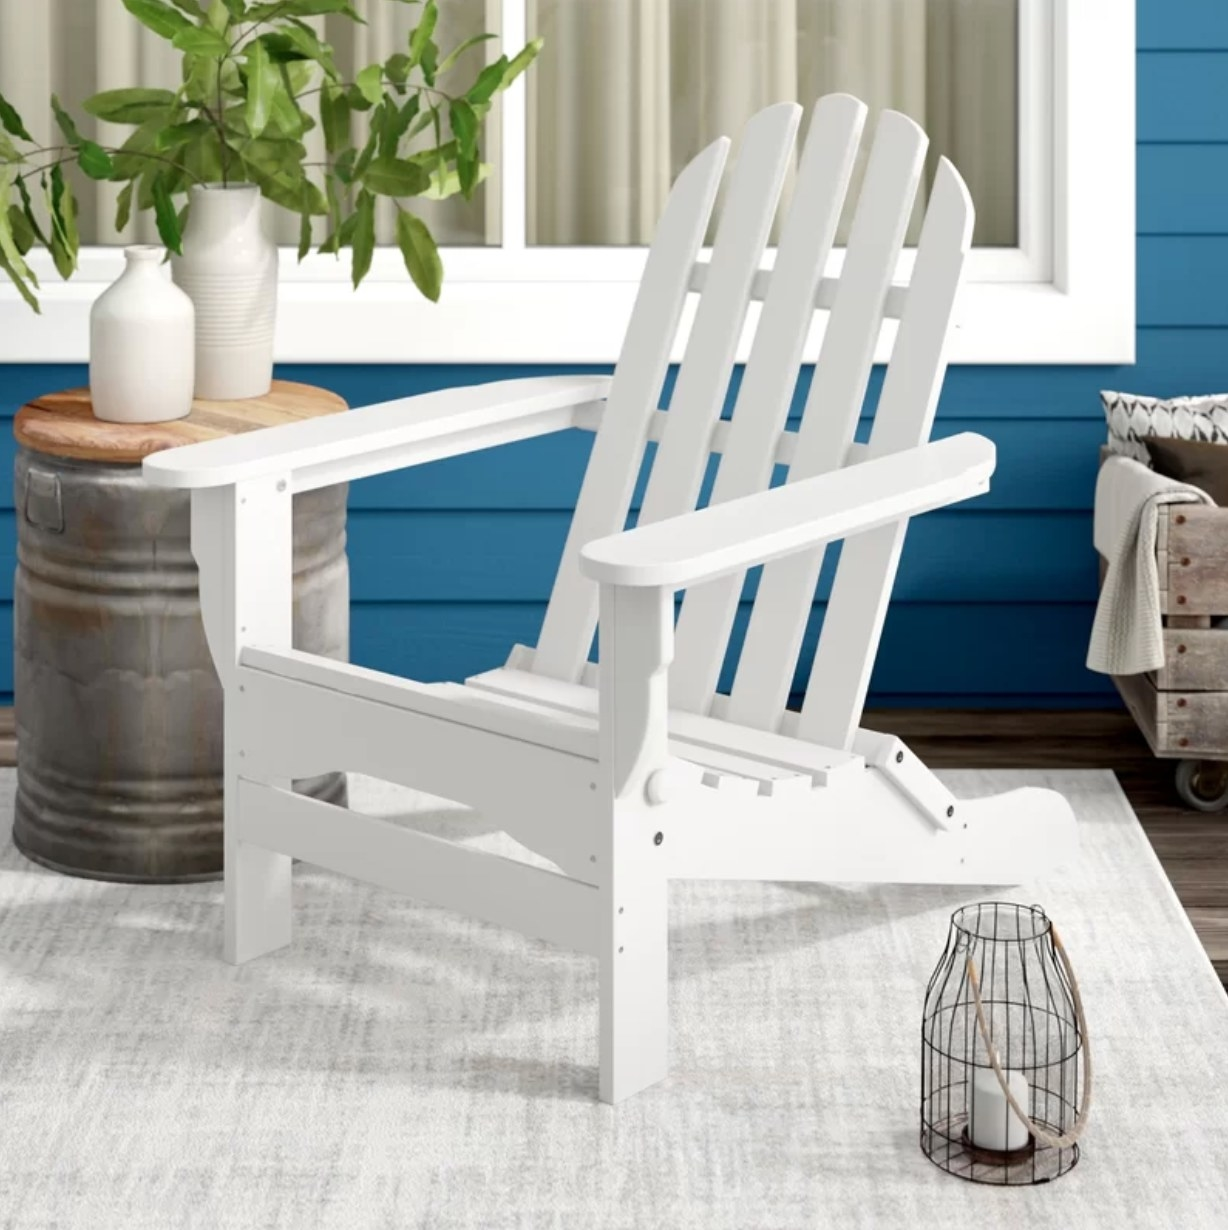 The white plastic outdoor chair on a deck